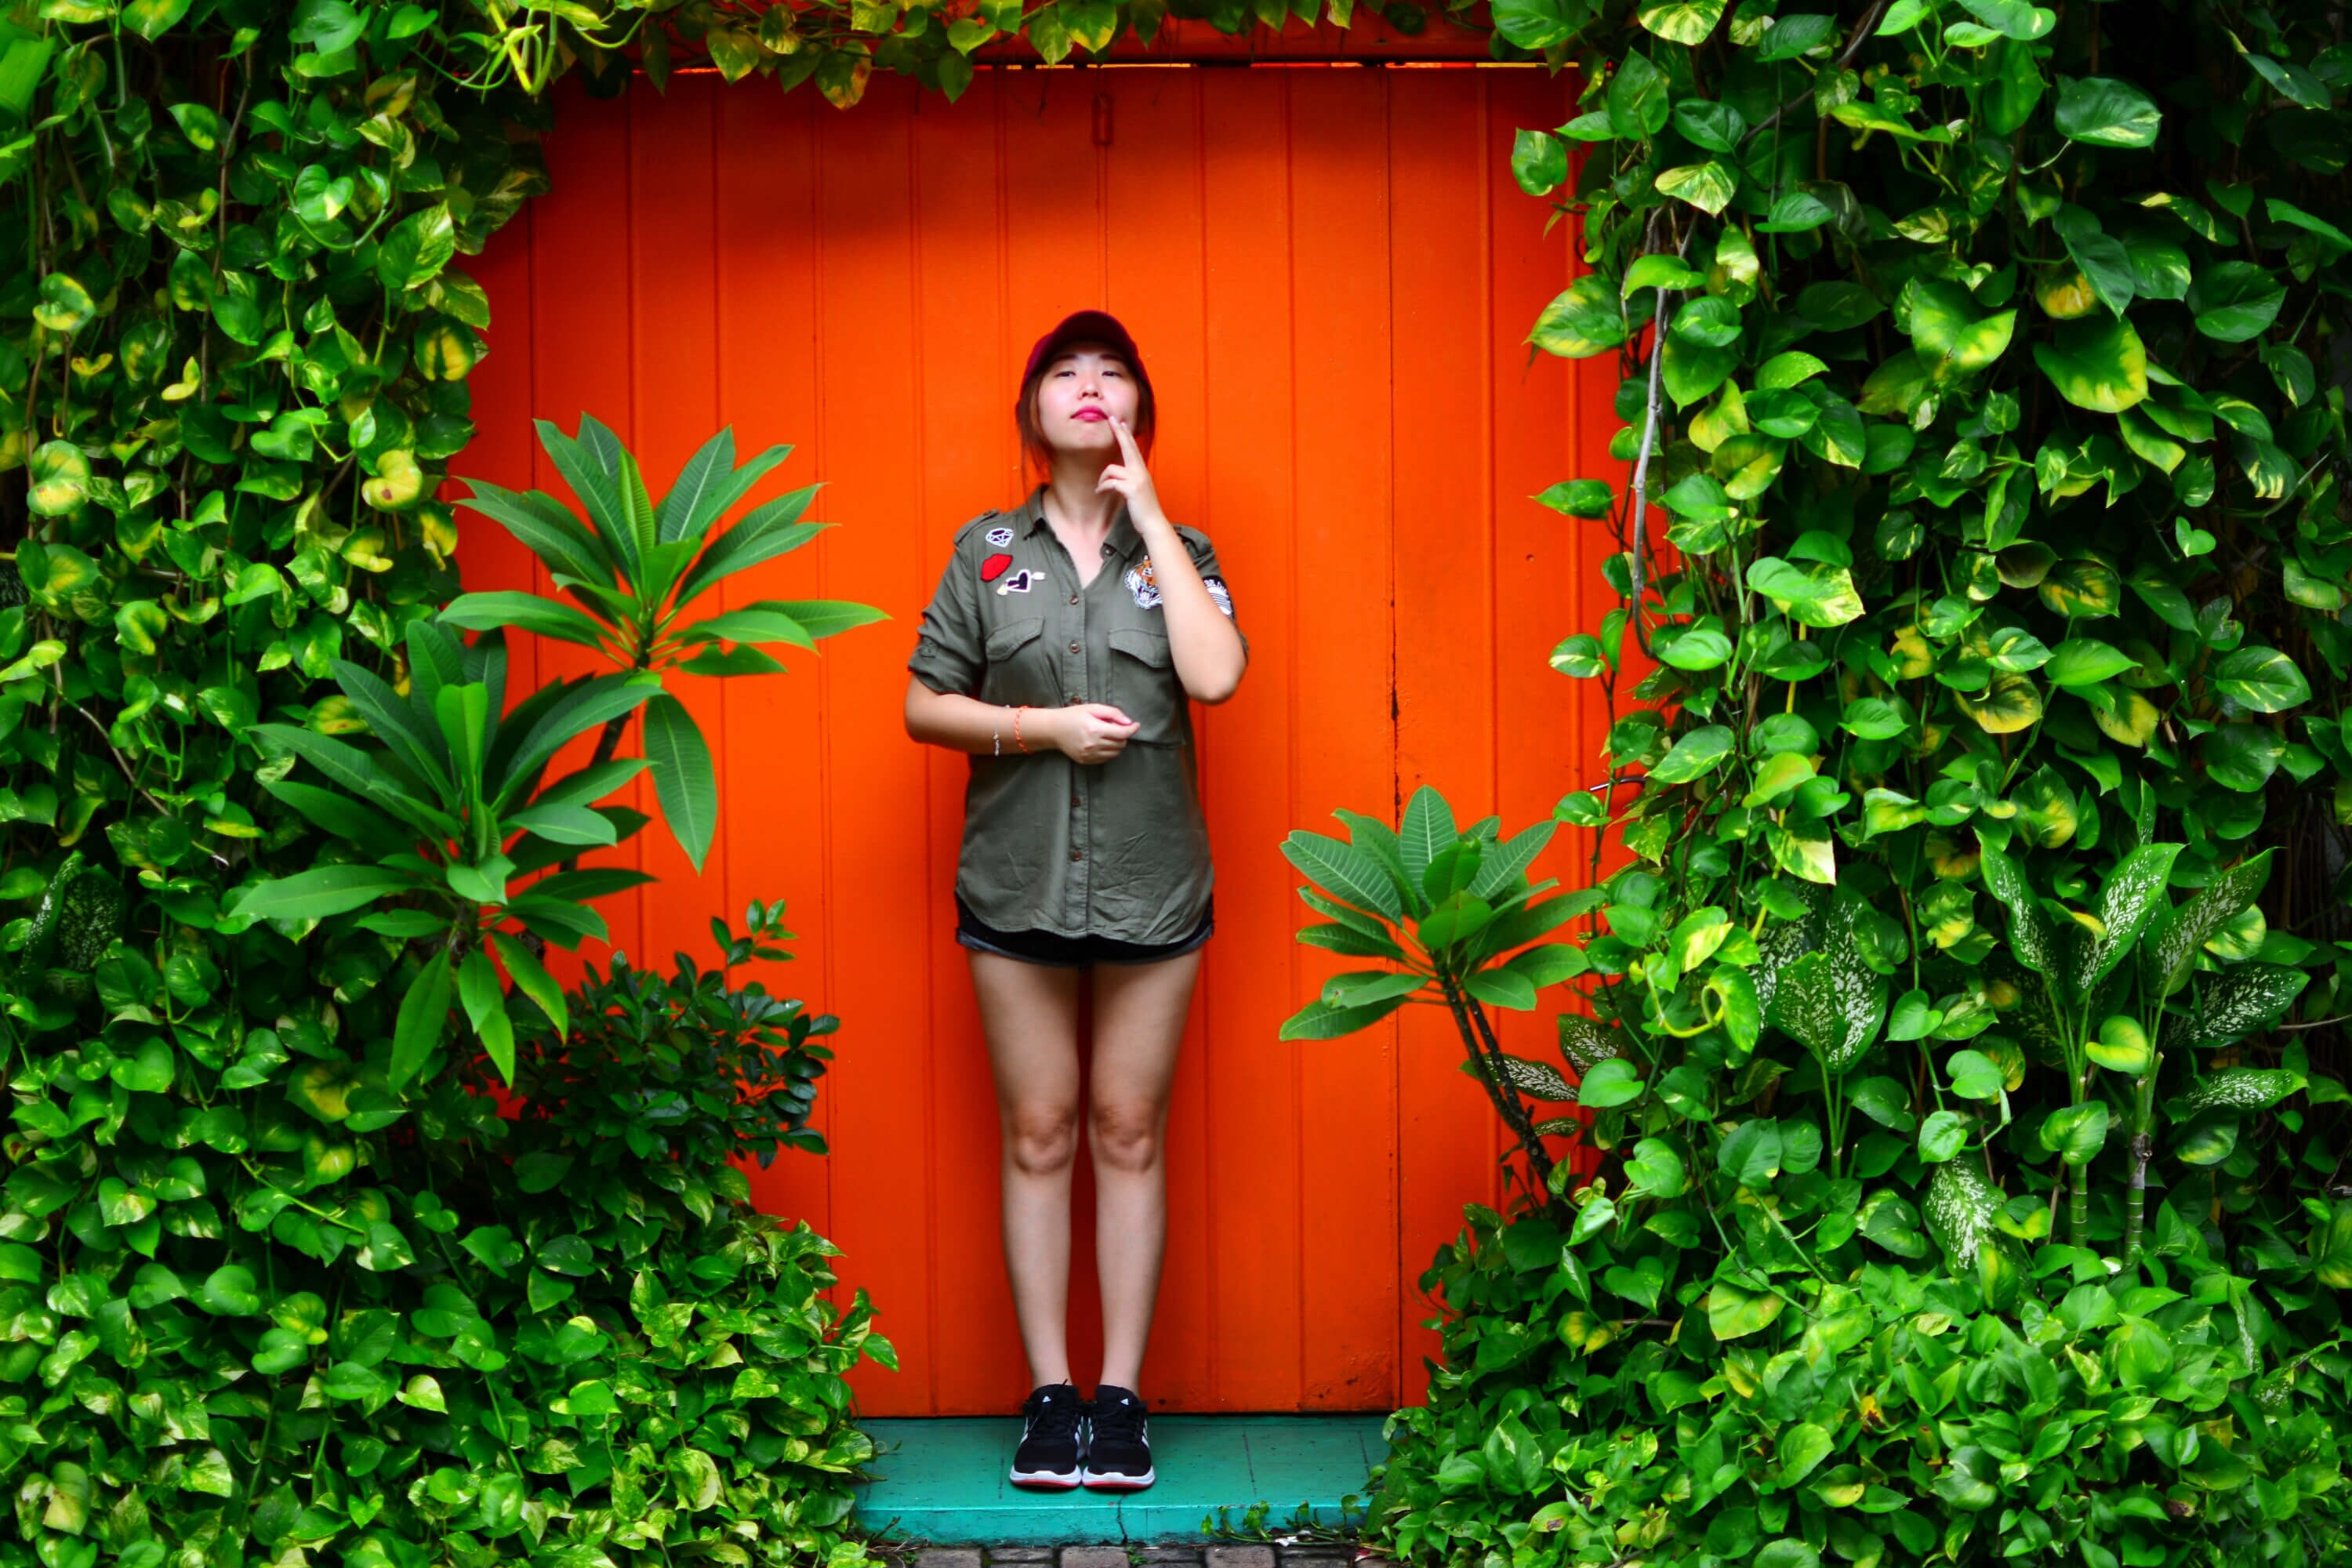 Girl Standing In Front of Red Door with Ivy